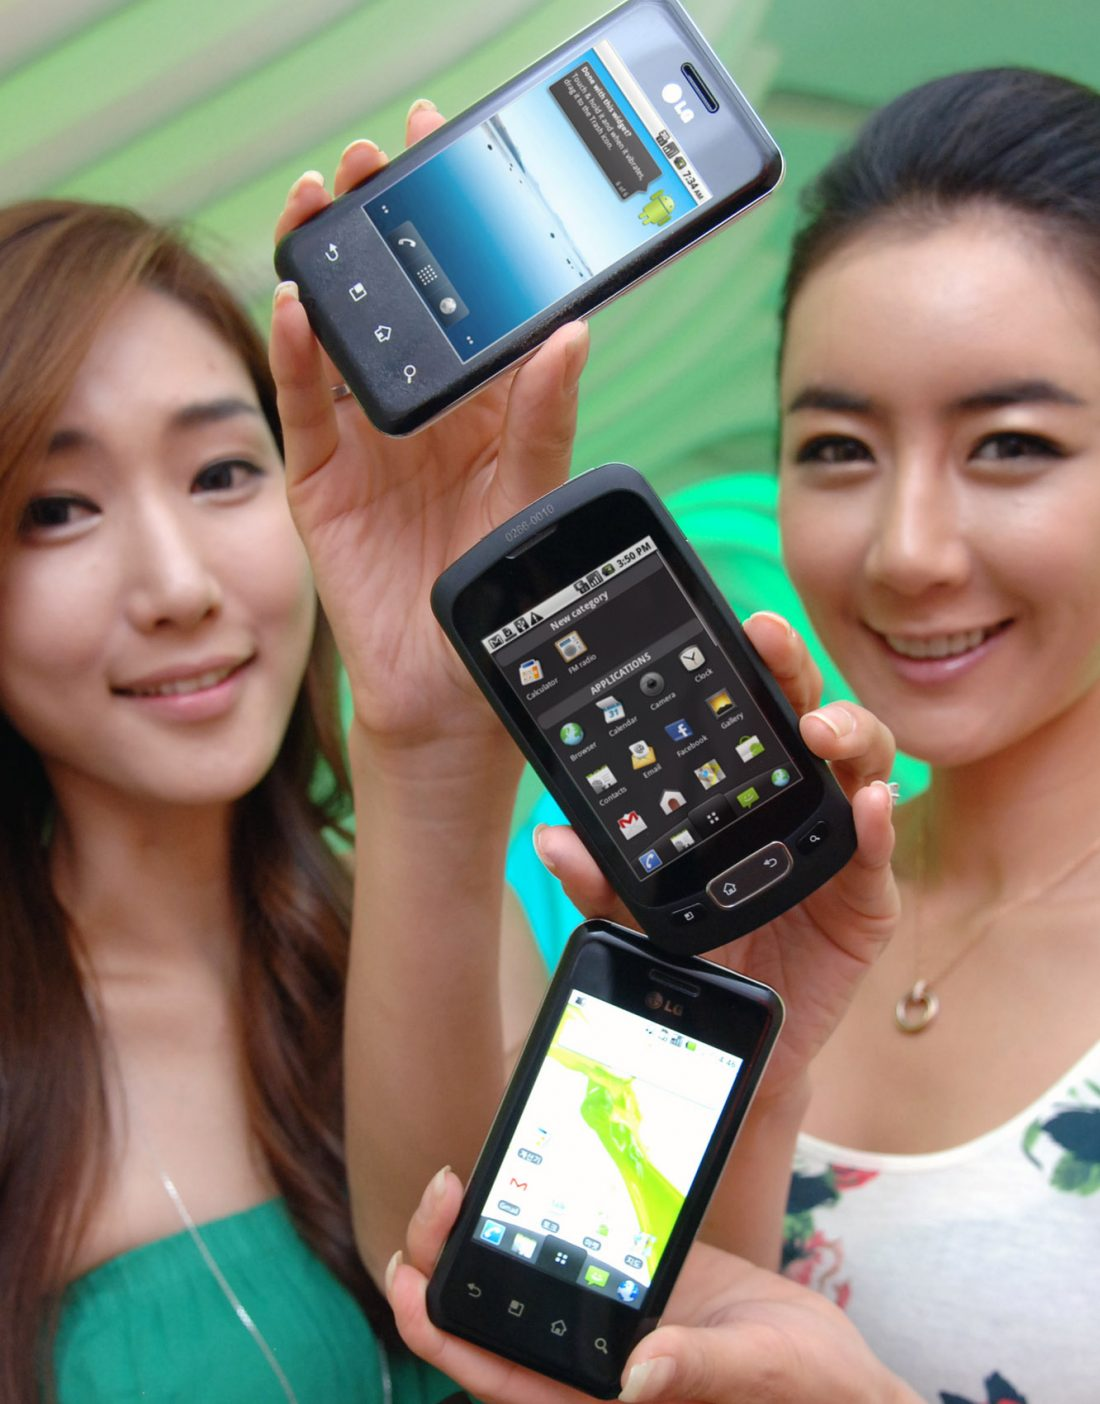 Two models hold up two variants of the LG Optimus Chic and one of the LG Optimus One in a vertical pattern.